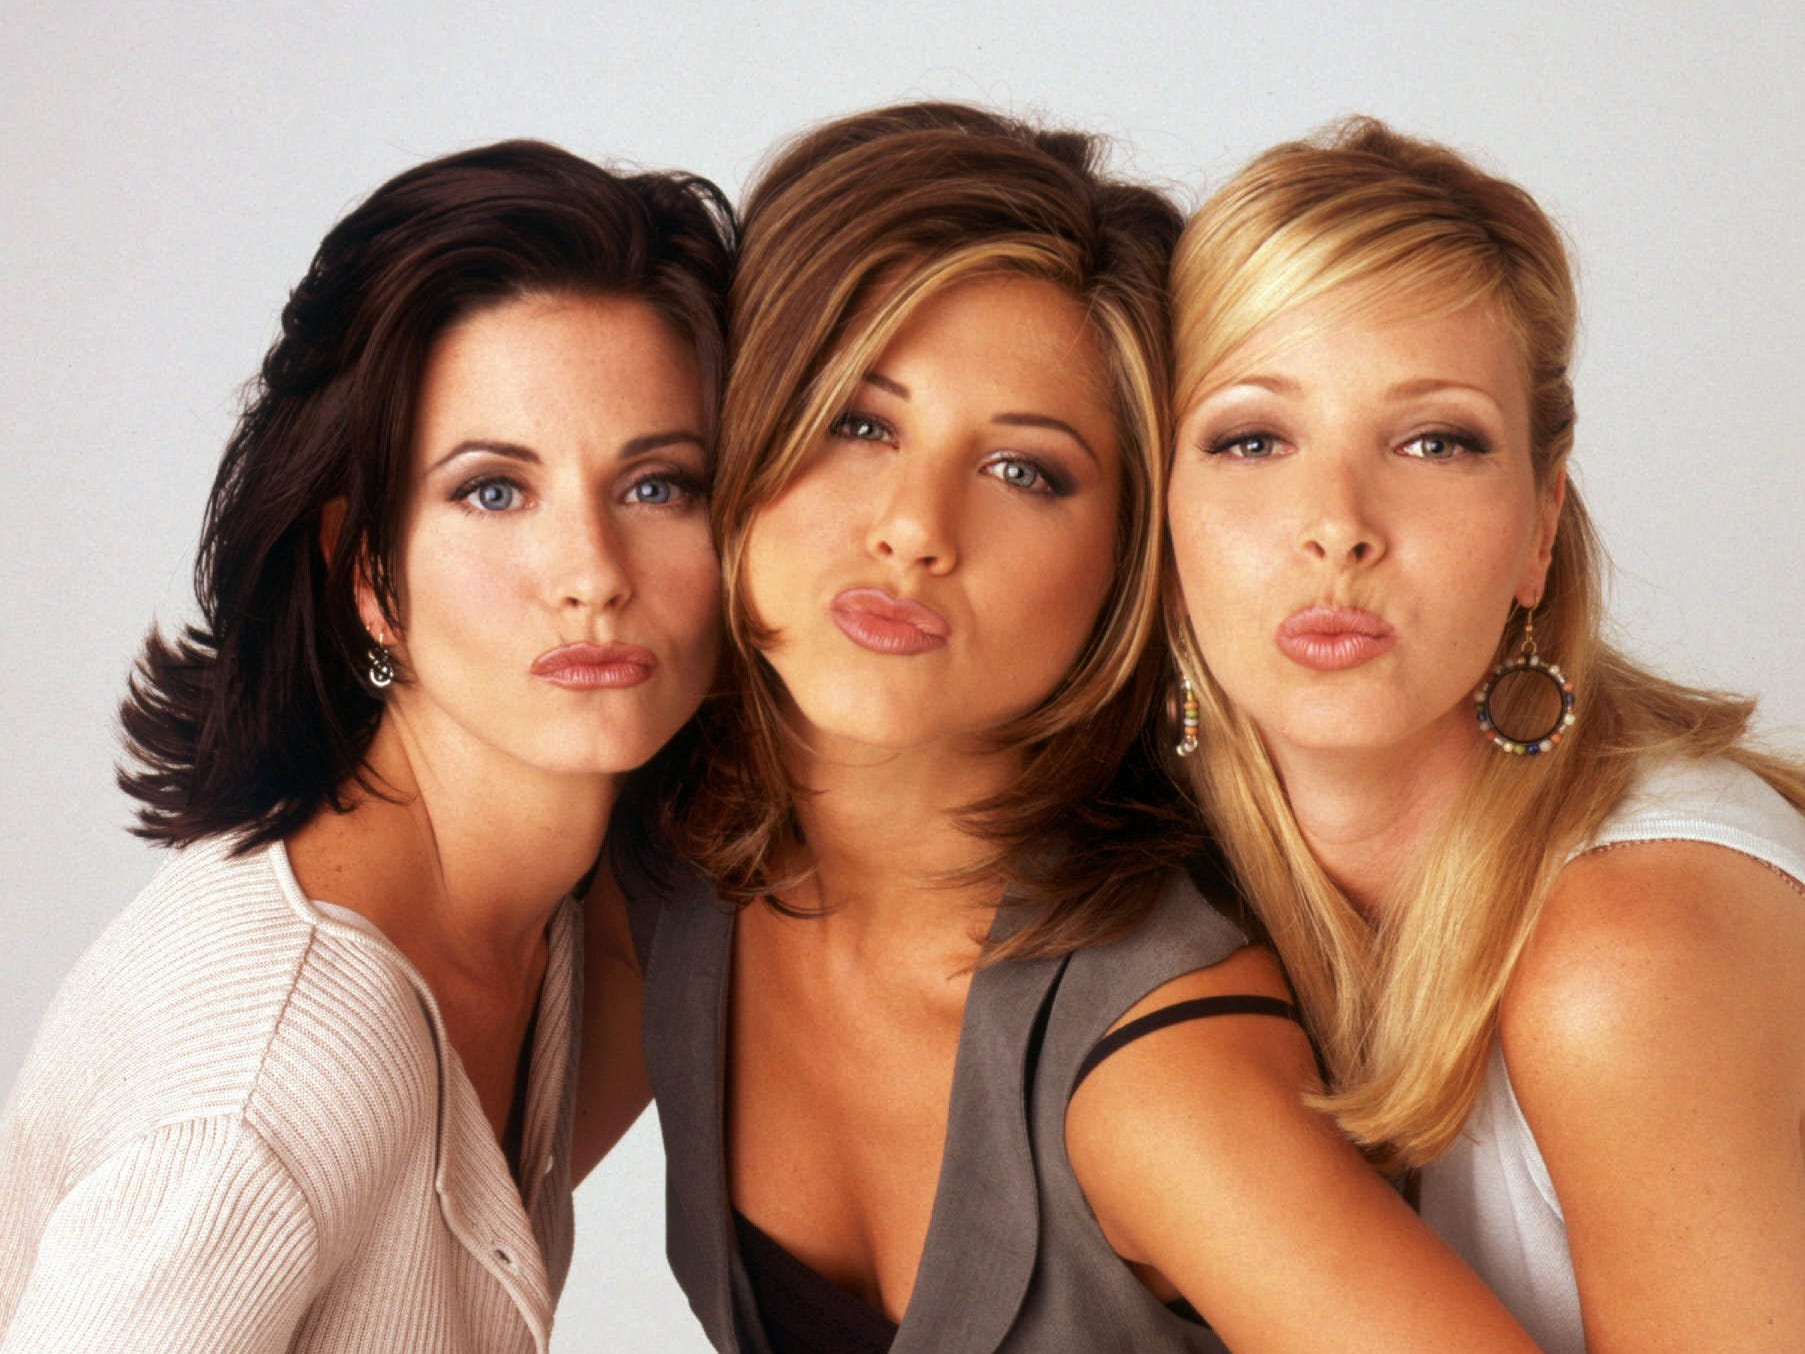 """The ladies of """"Friends"""" – Courteney Cox, left, Aniston, and Lisa Kudrow – pucker up in promotional photos for the show's second season, shot in August 1995."""